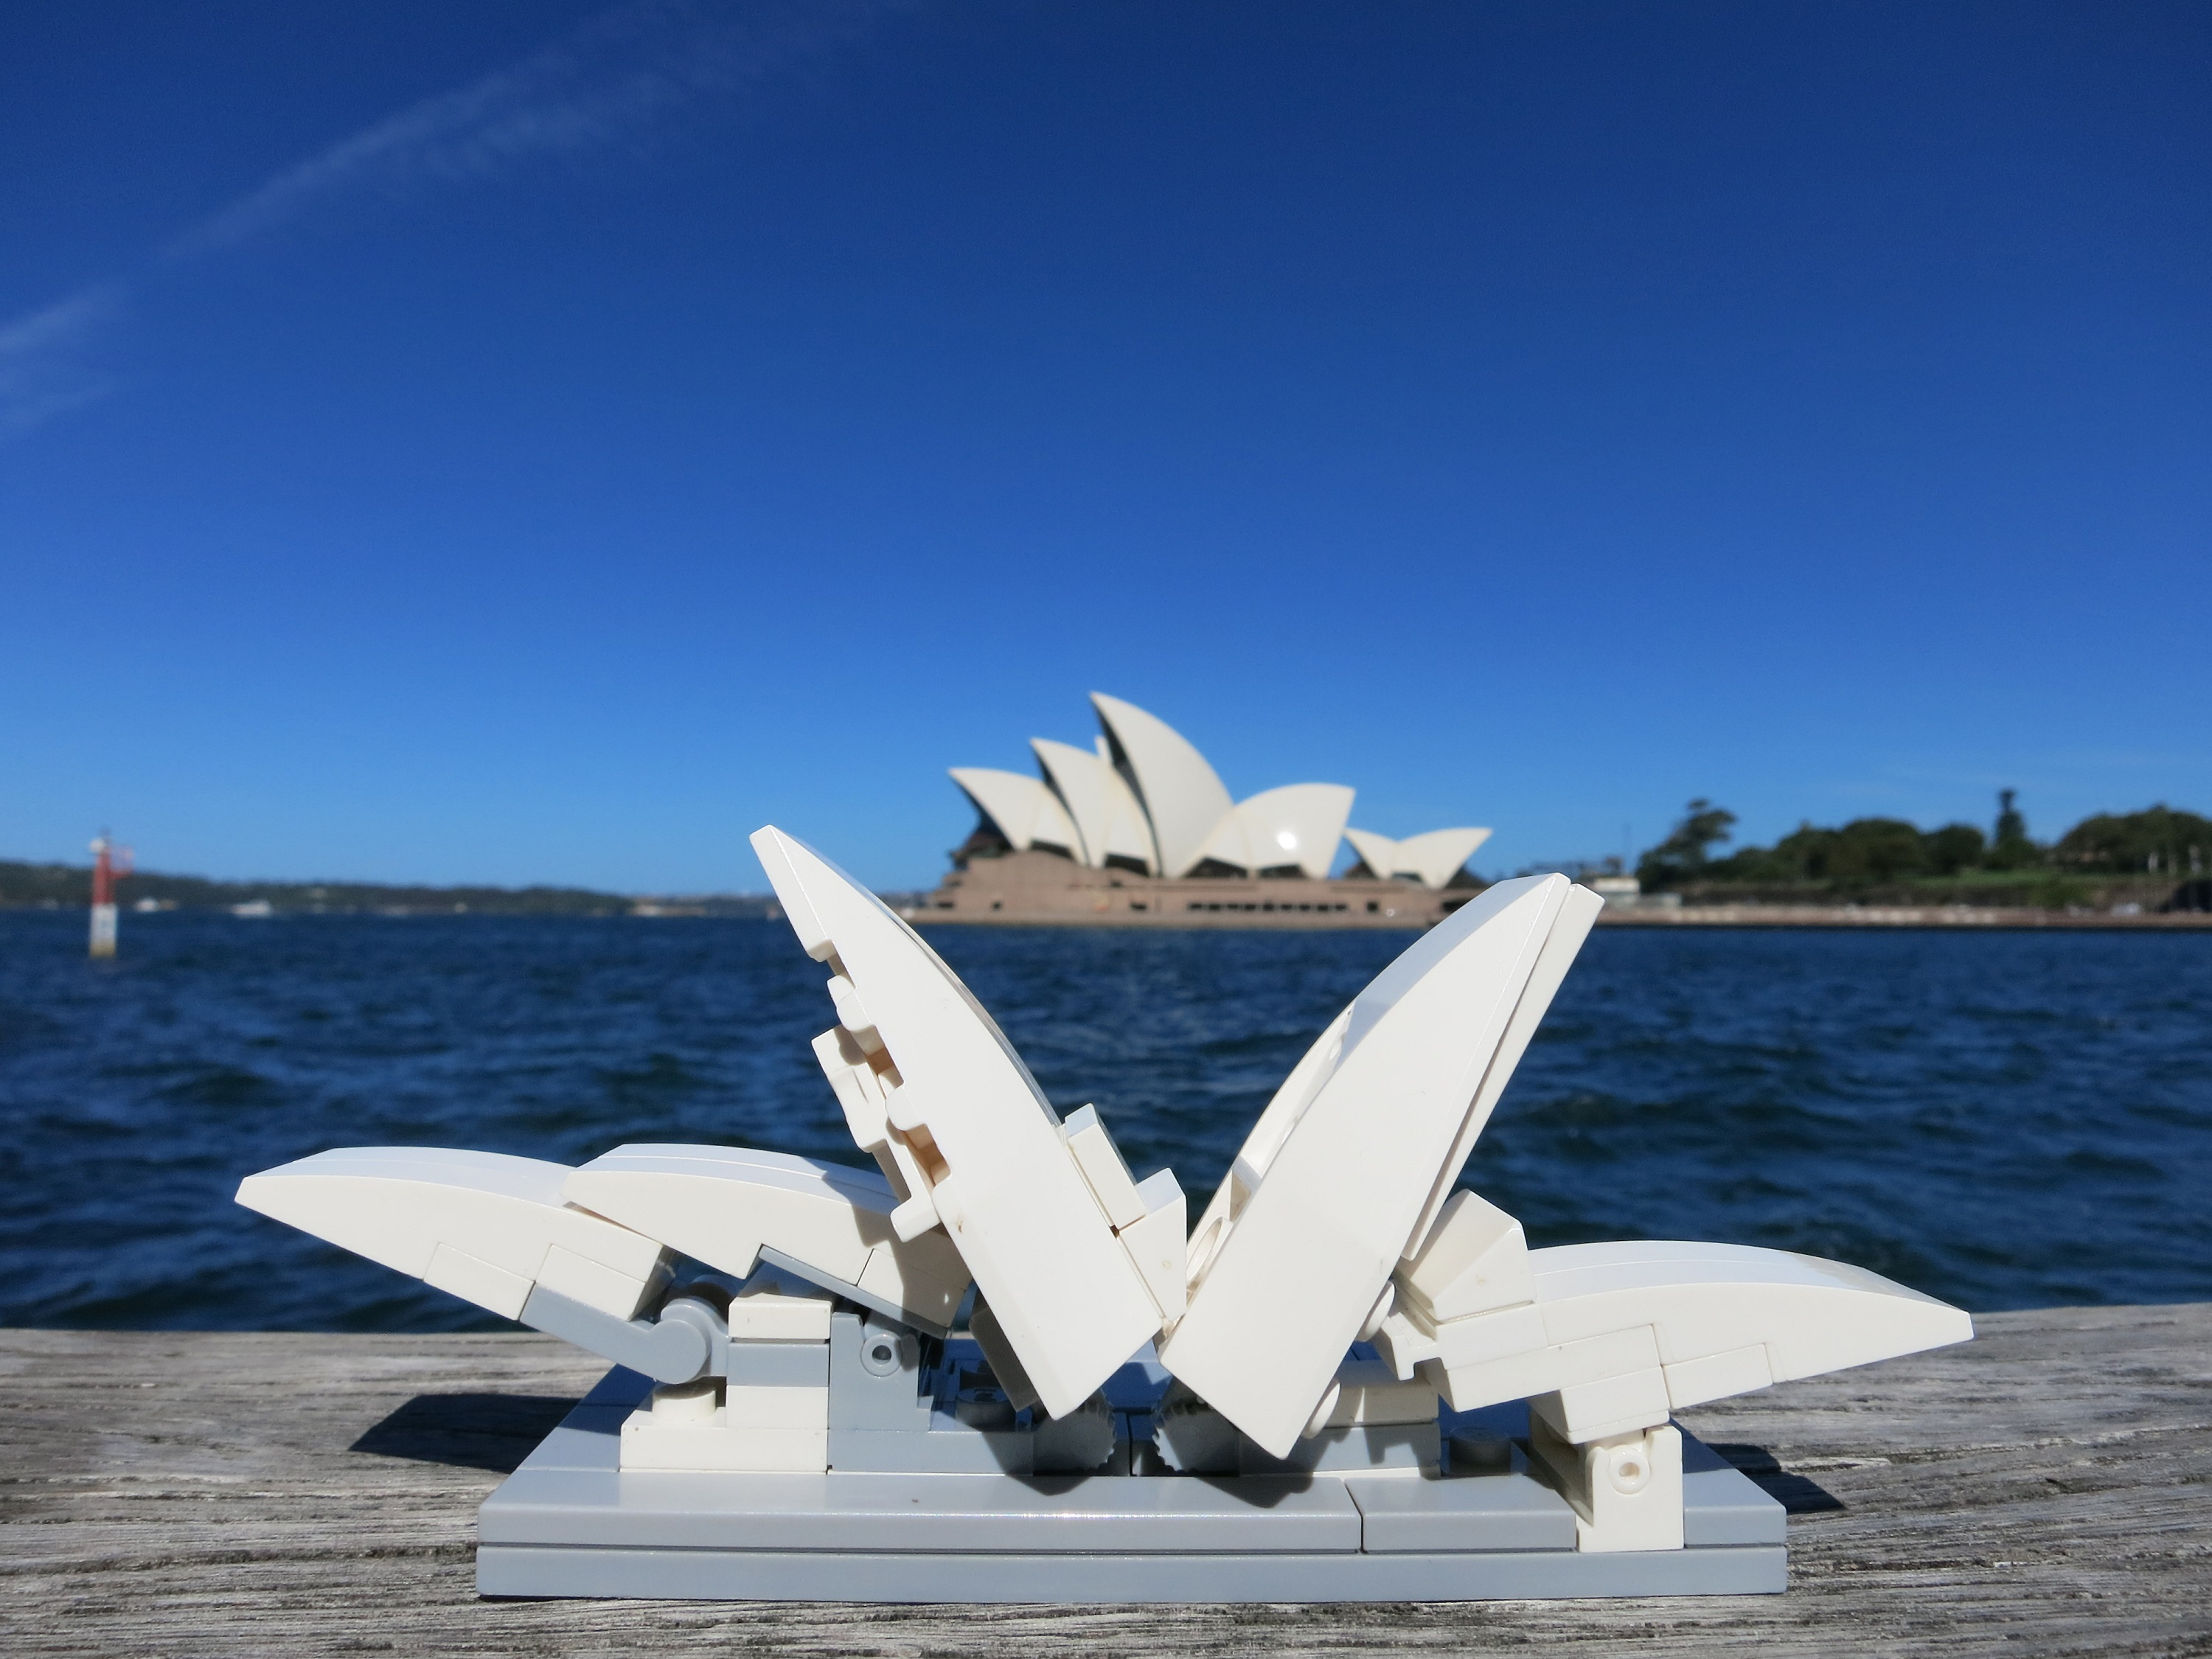 How big is Lego in Australia?